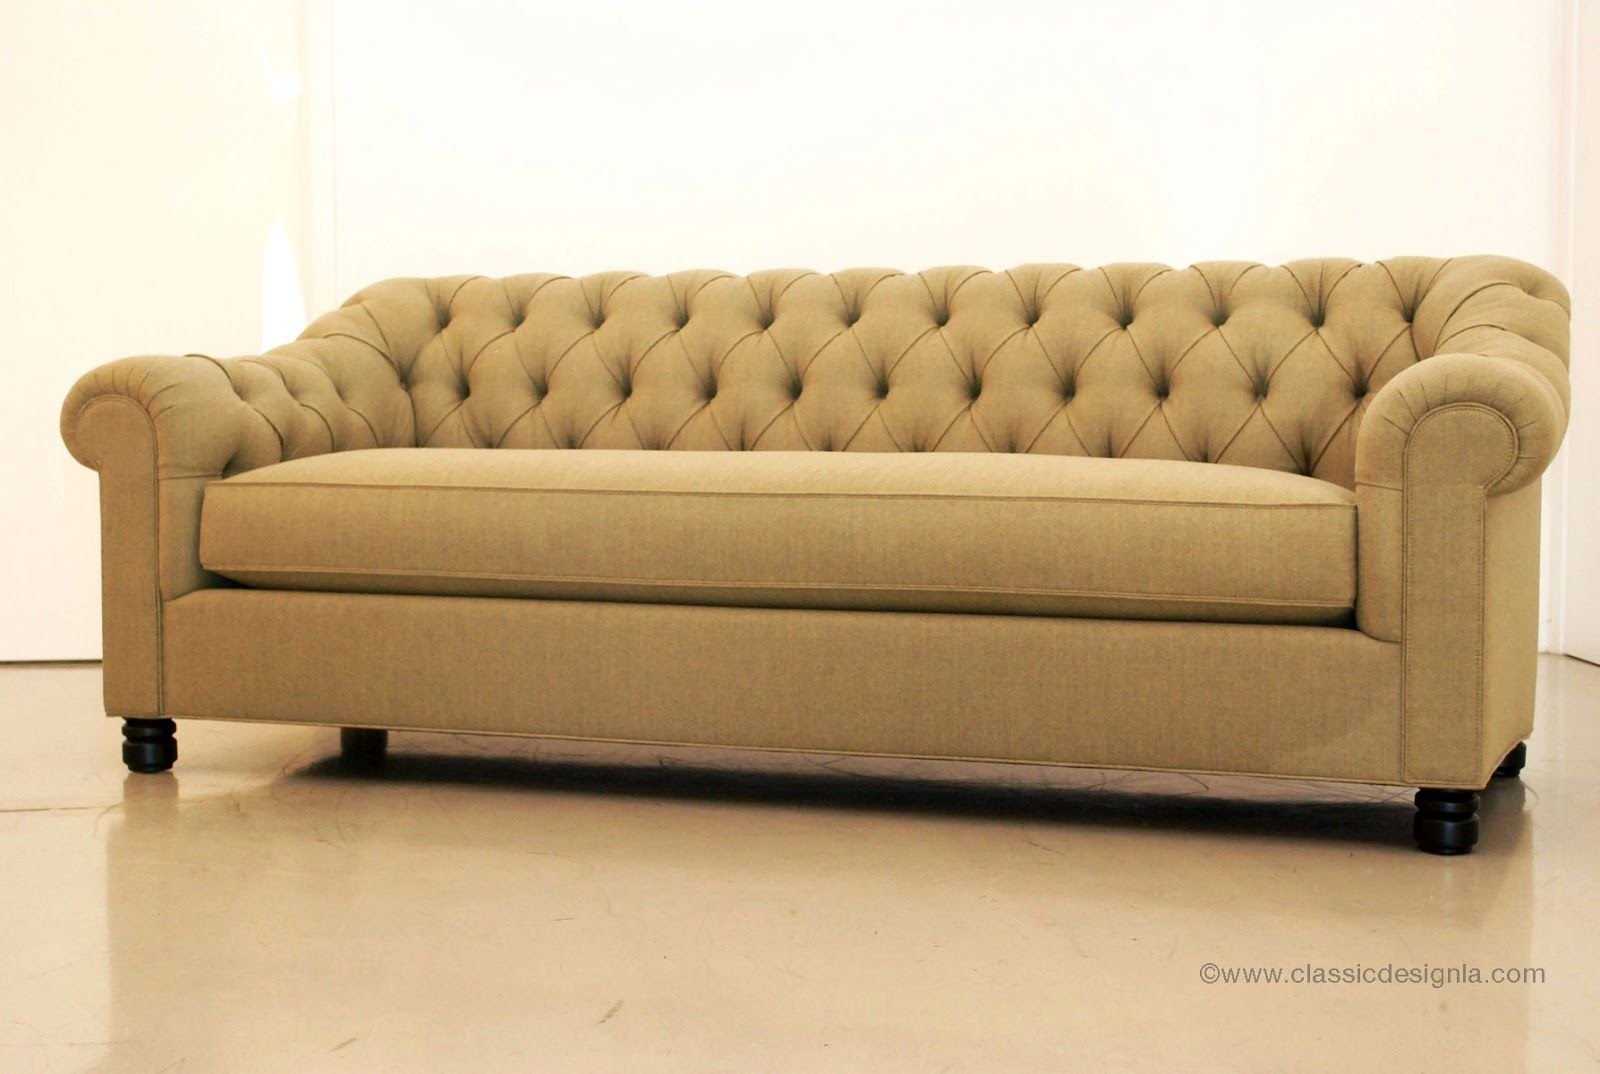 incredible leather sofa chair gallery-Elegant Leather sofa Chair Décor